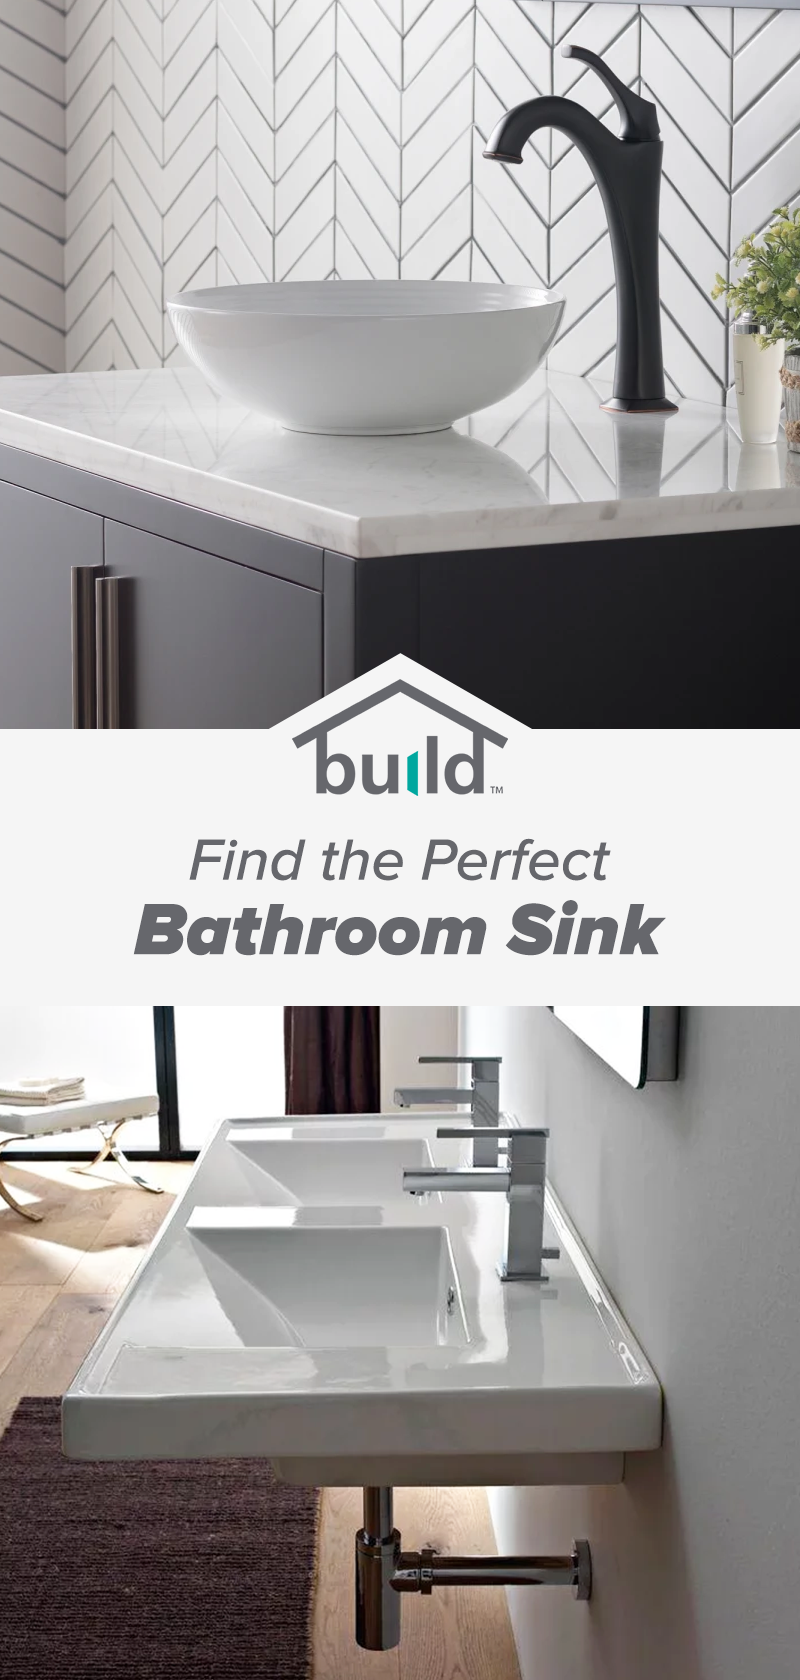 Find the Perfect Bathroom Sink